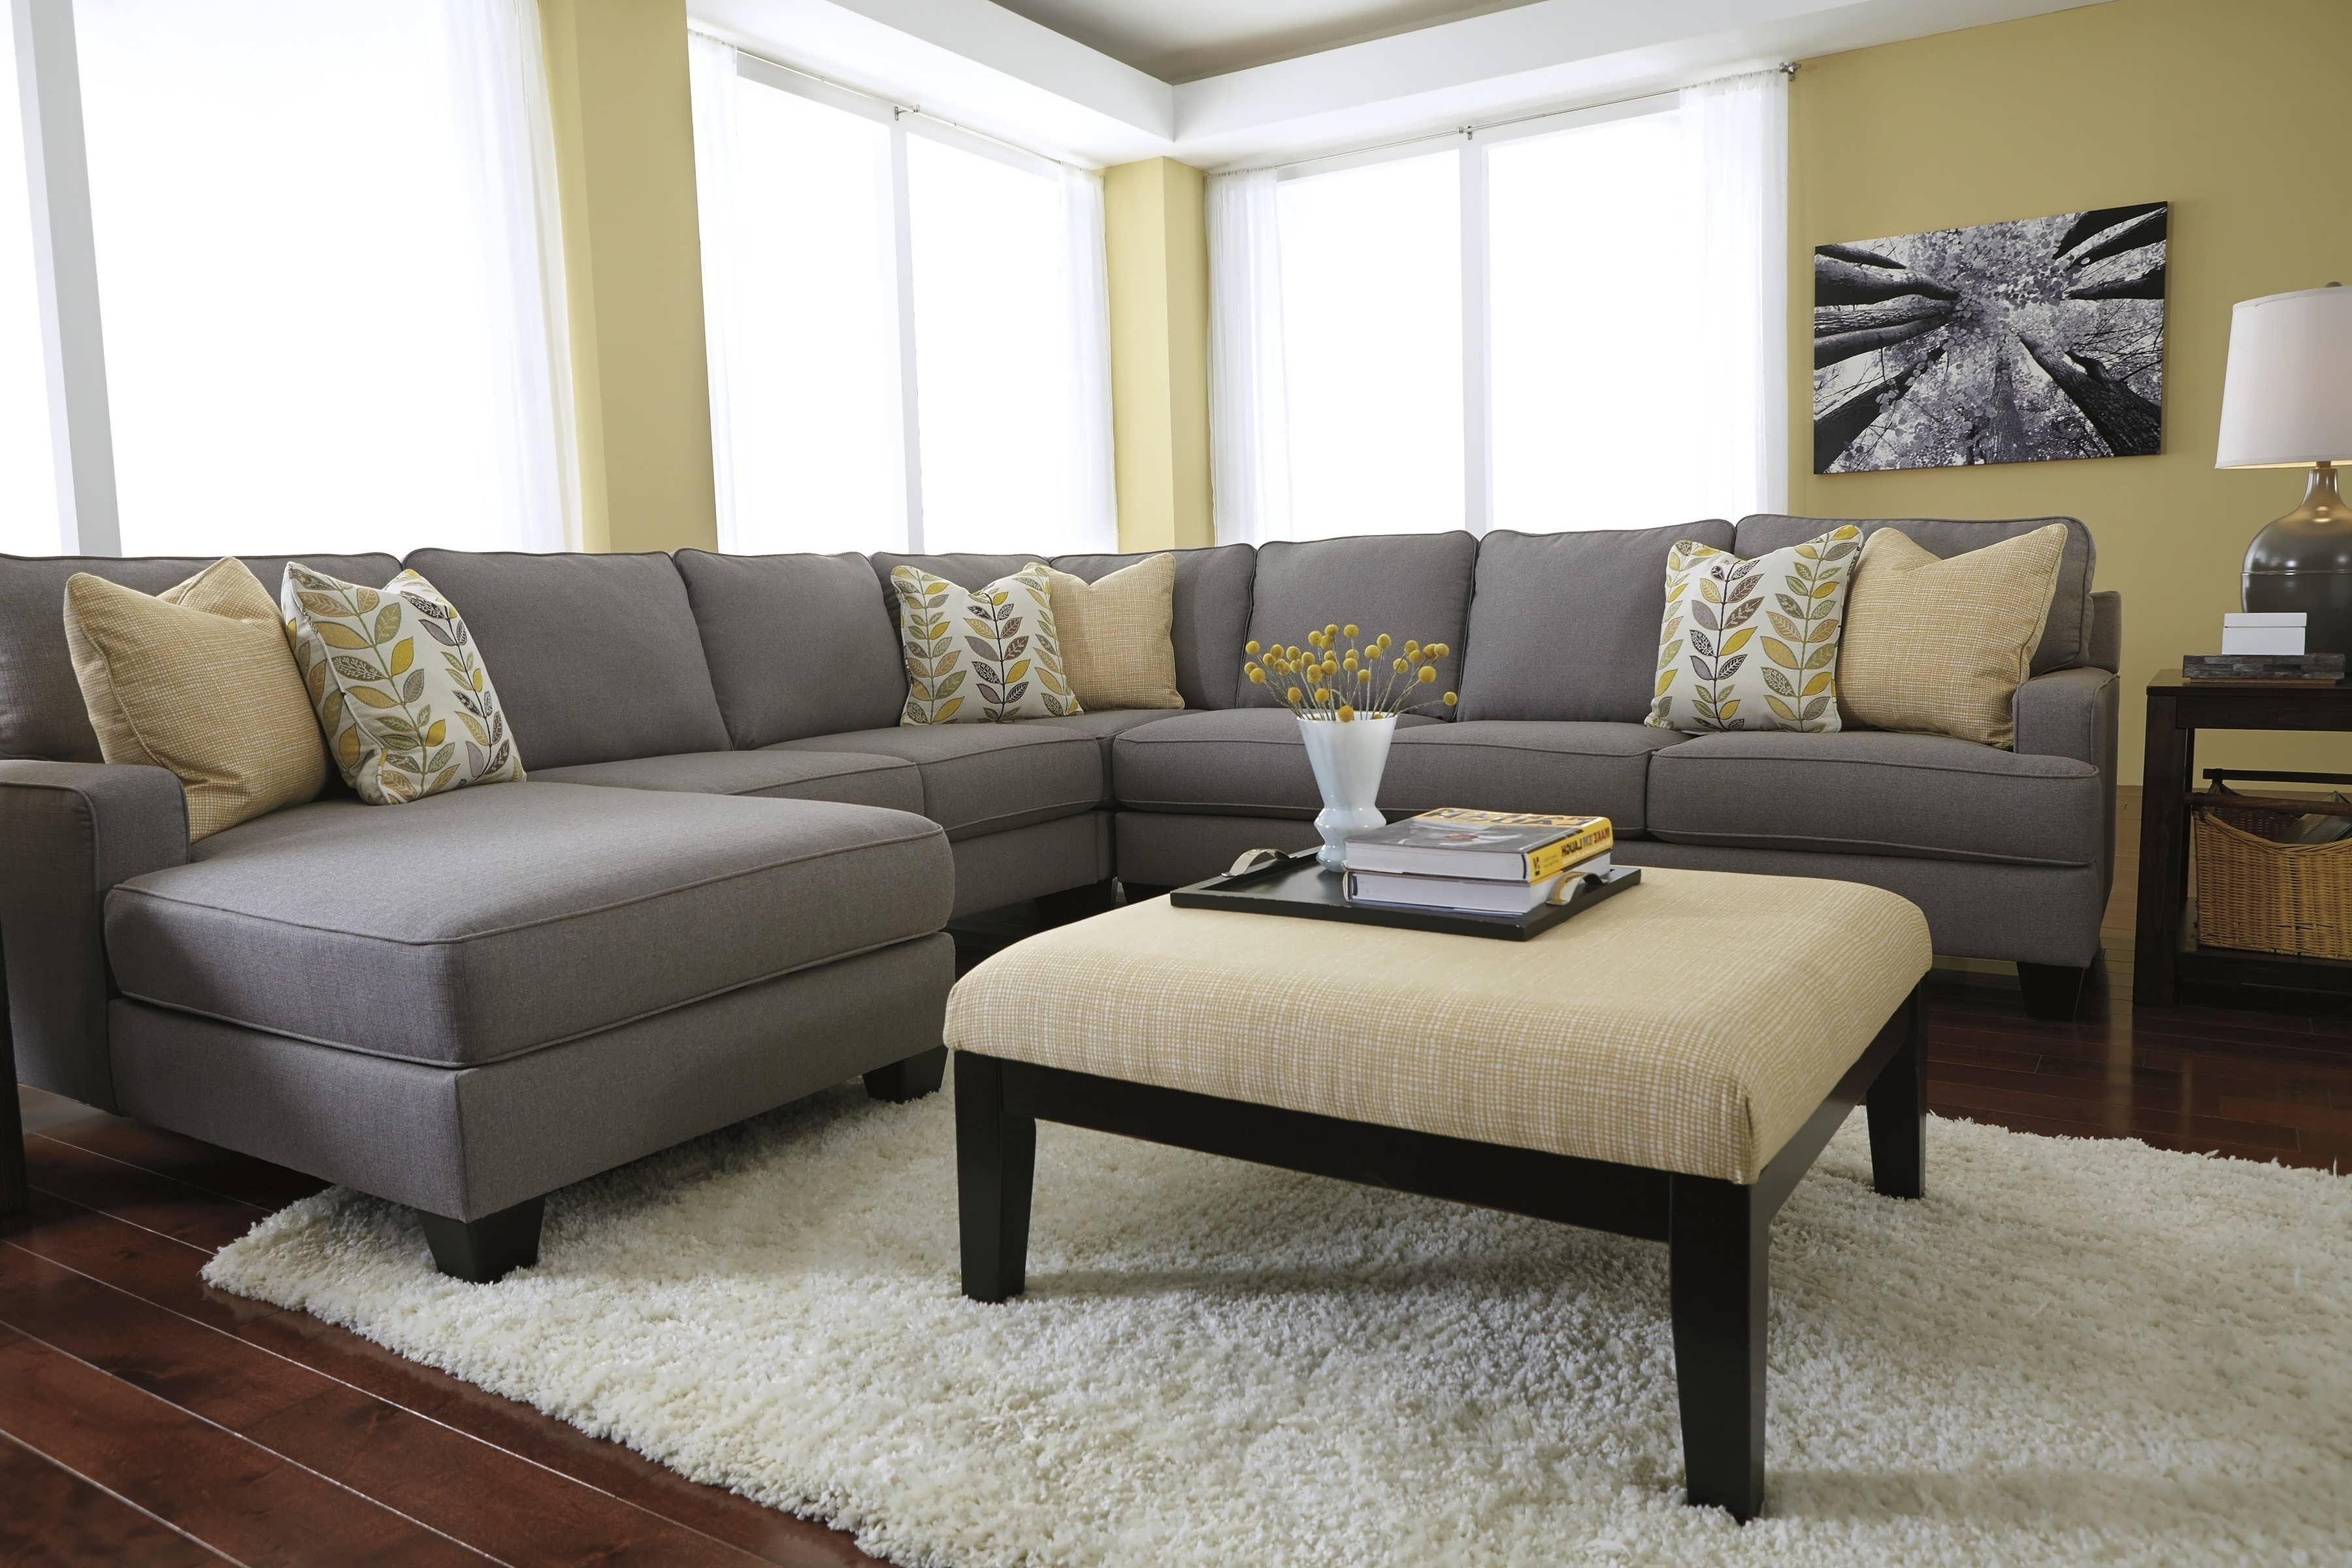 2017 Sofa : Sectional Sofas Gray Sectional With Chaise Grey Sectionals Intended For Gray Sectional Sofas With Chaise (View 2 of 15)